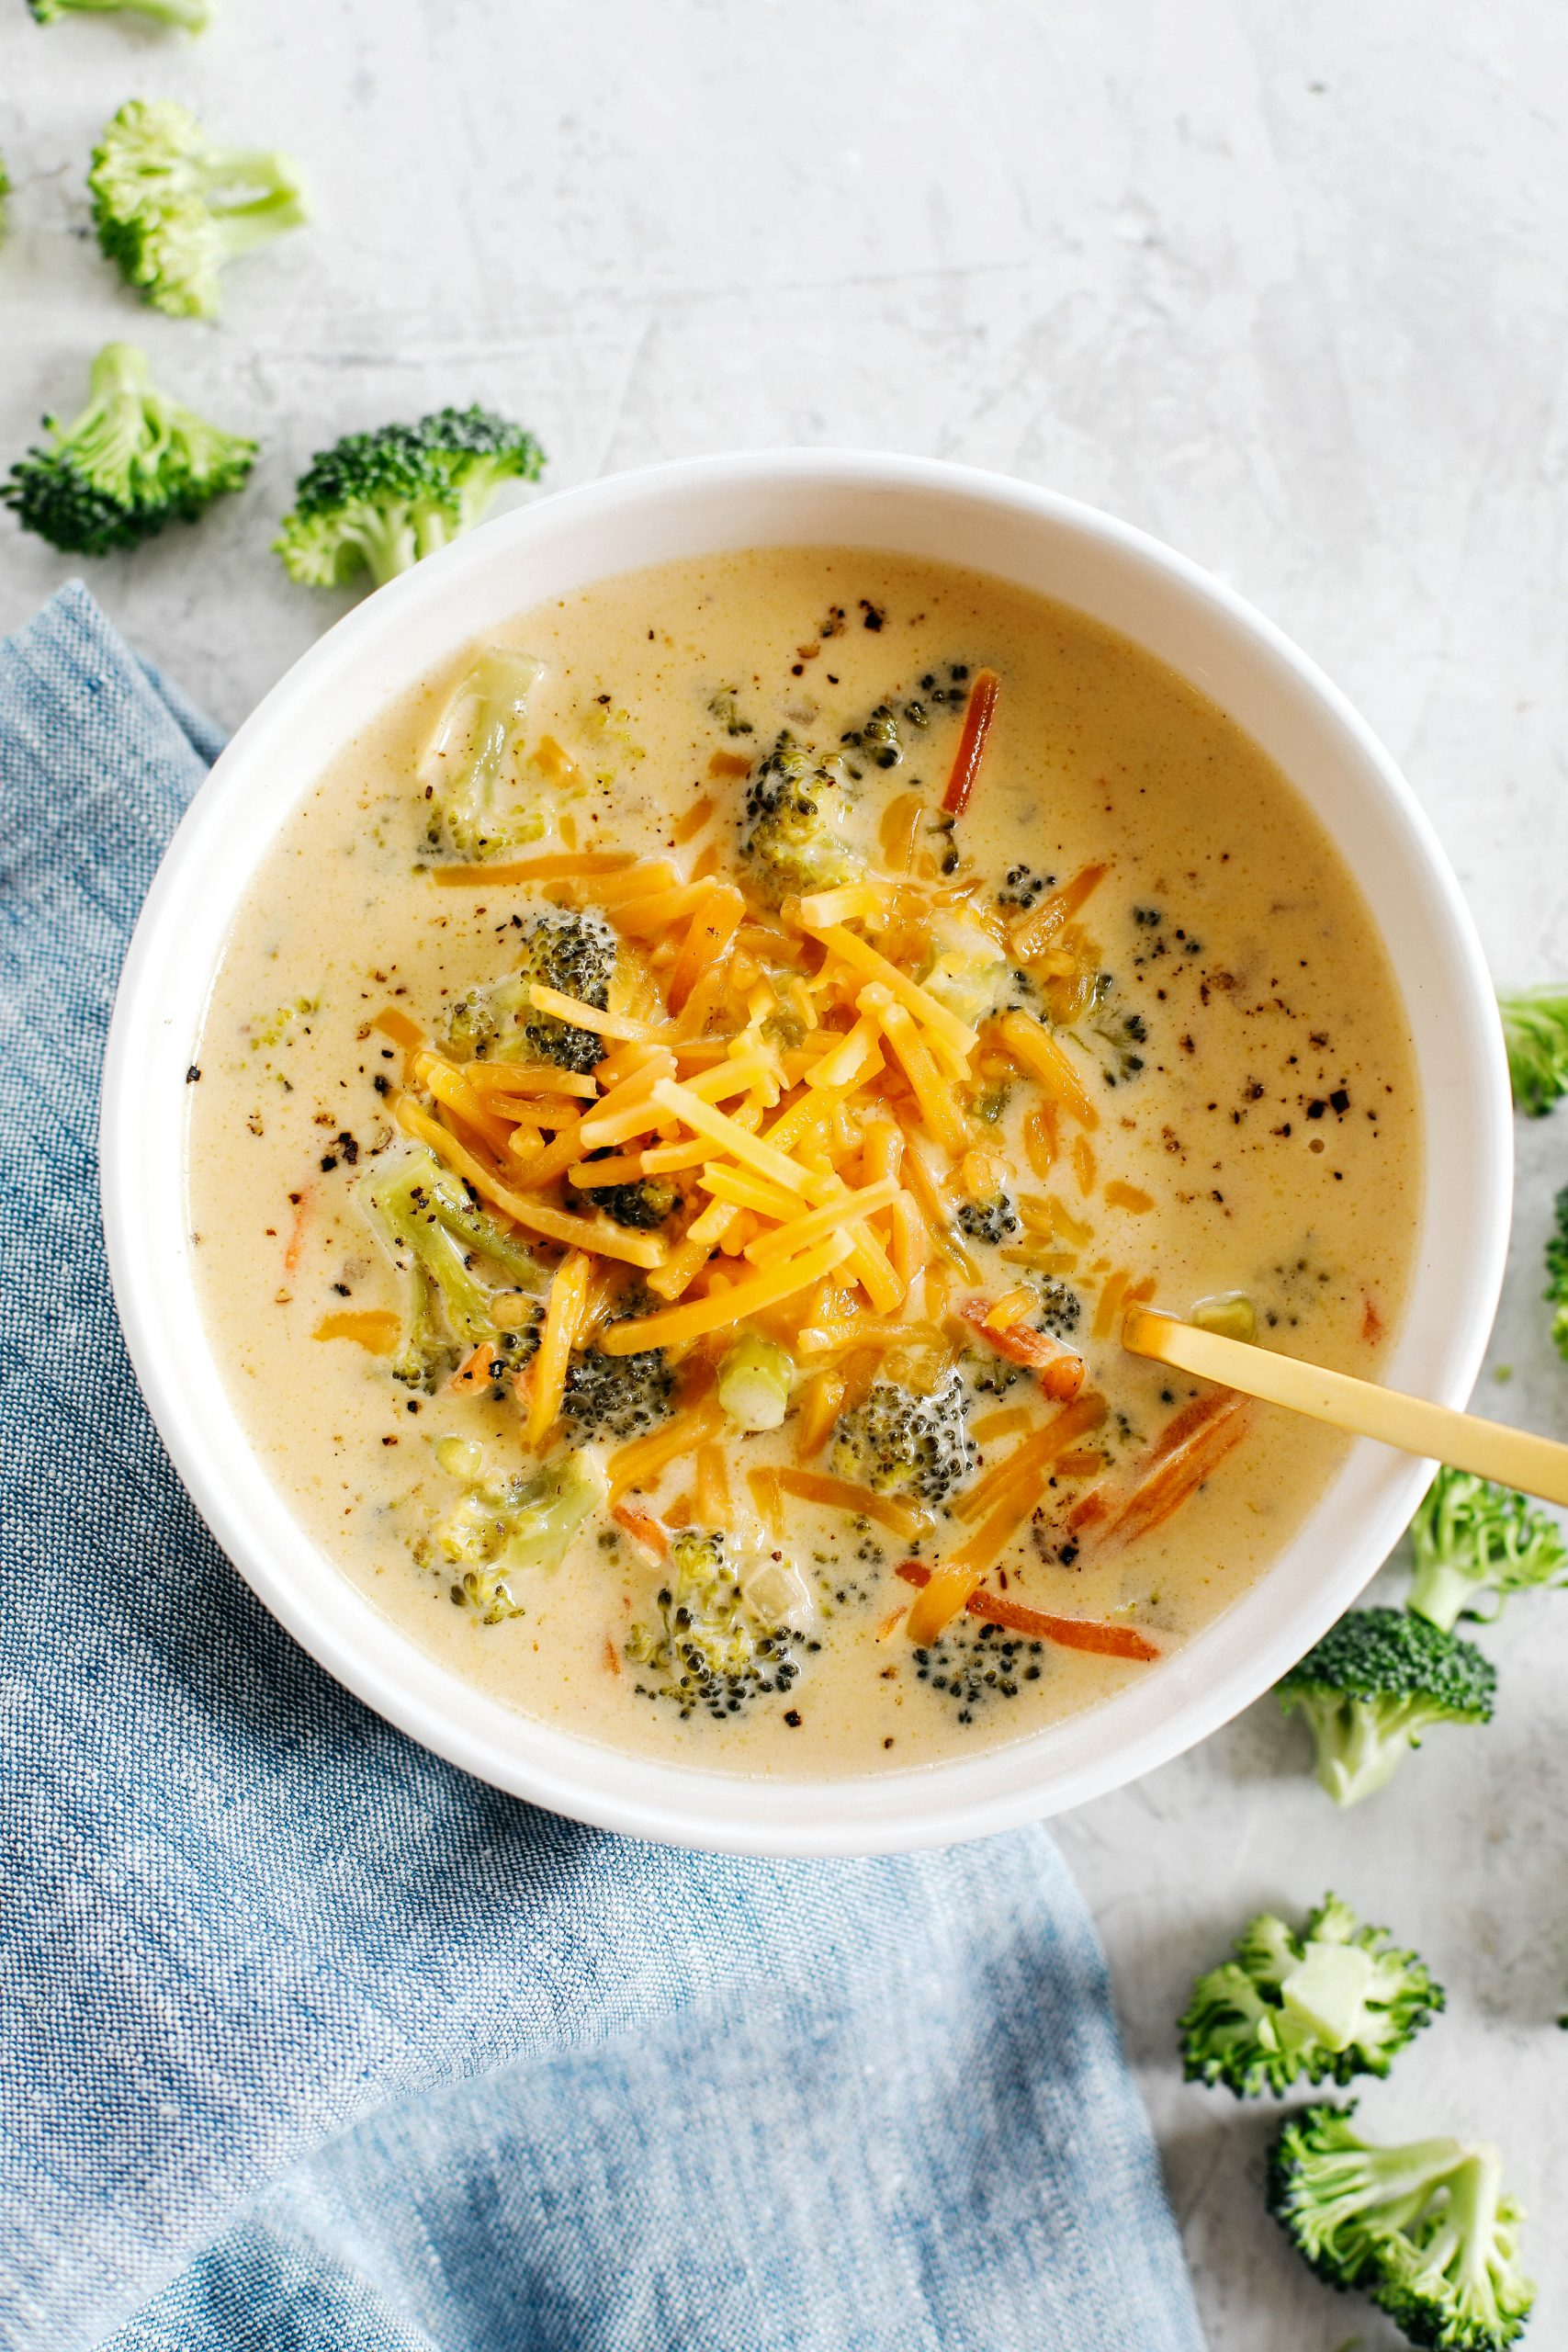 This Creamy Broccoli Cheddar Soup makes the perfect low carb comfort dish that is delicious, packed with veggies and made all in one pot in under 30 minutes!